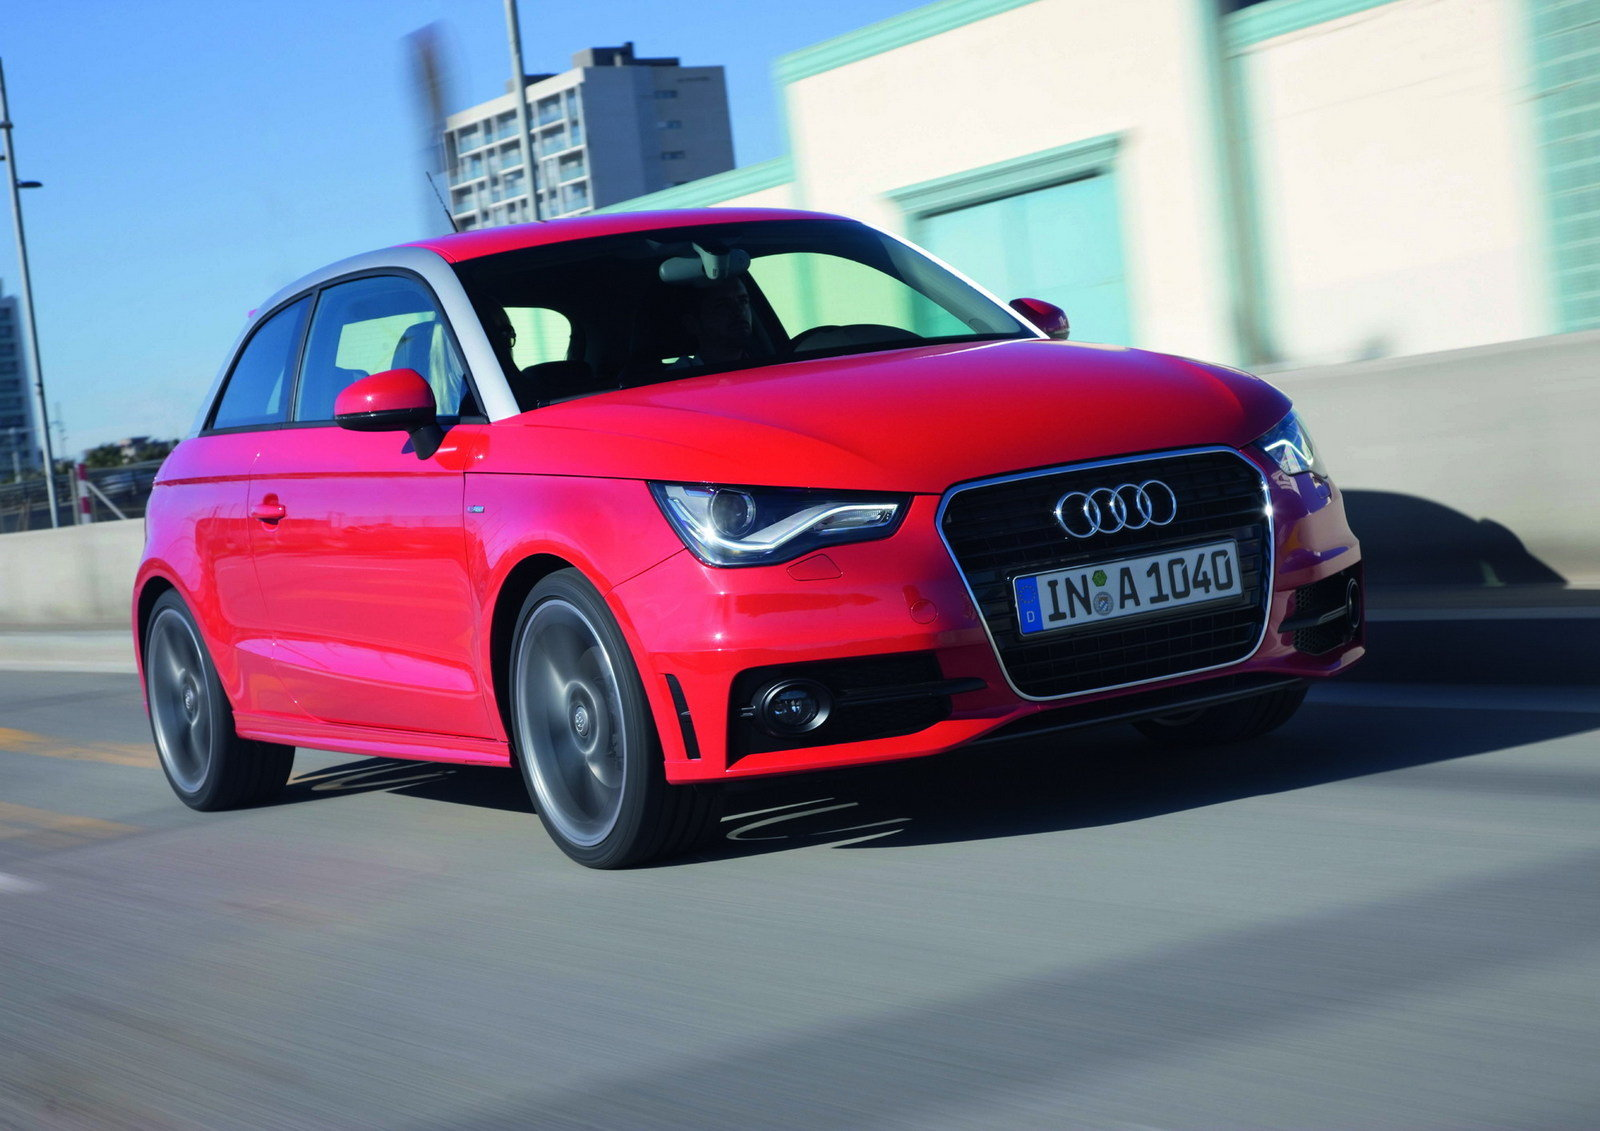 2011 audi a1 s line picture 351514 car review top speed. Black Bedroom Furniture Sets. Home Design Ideas